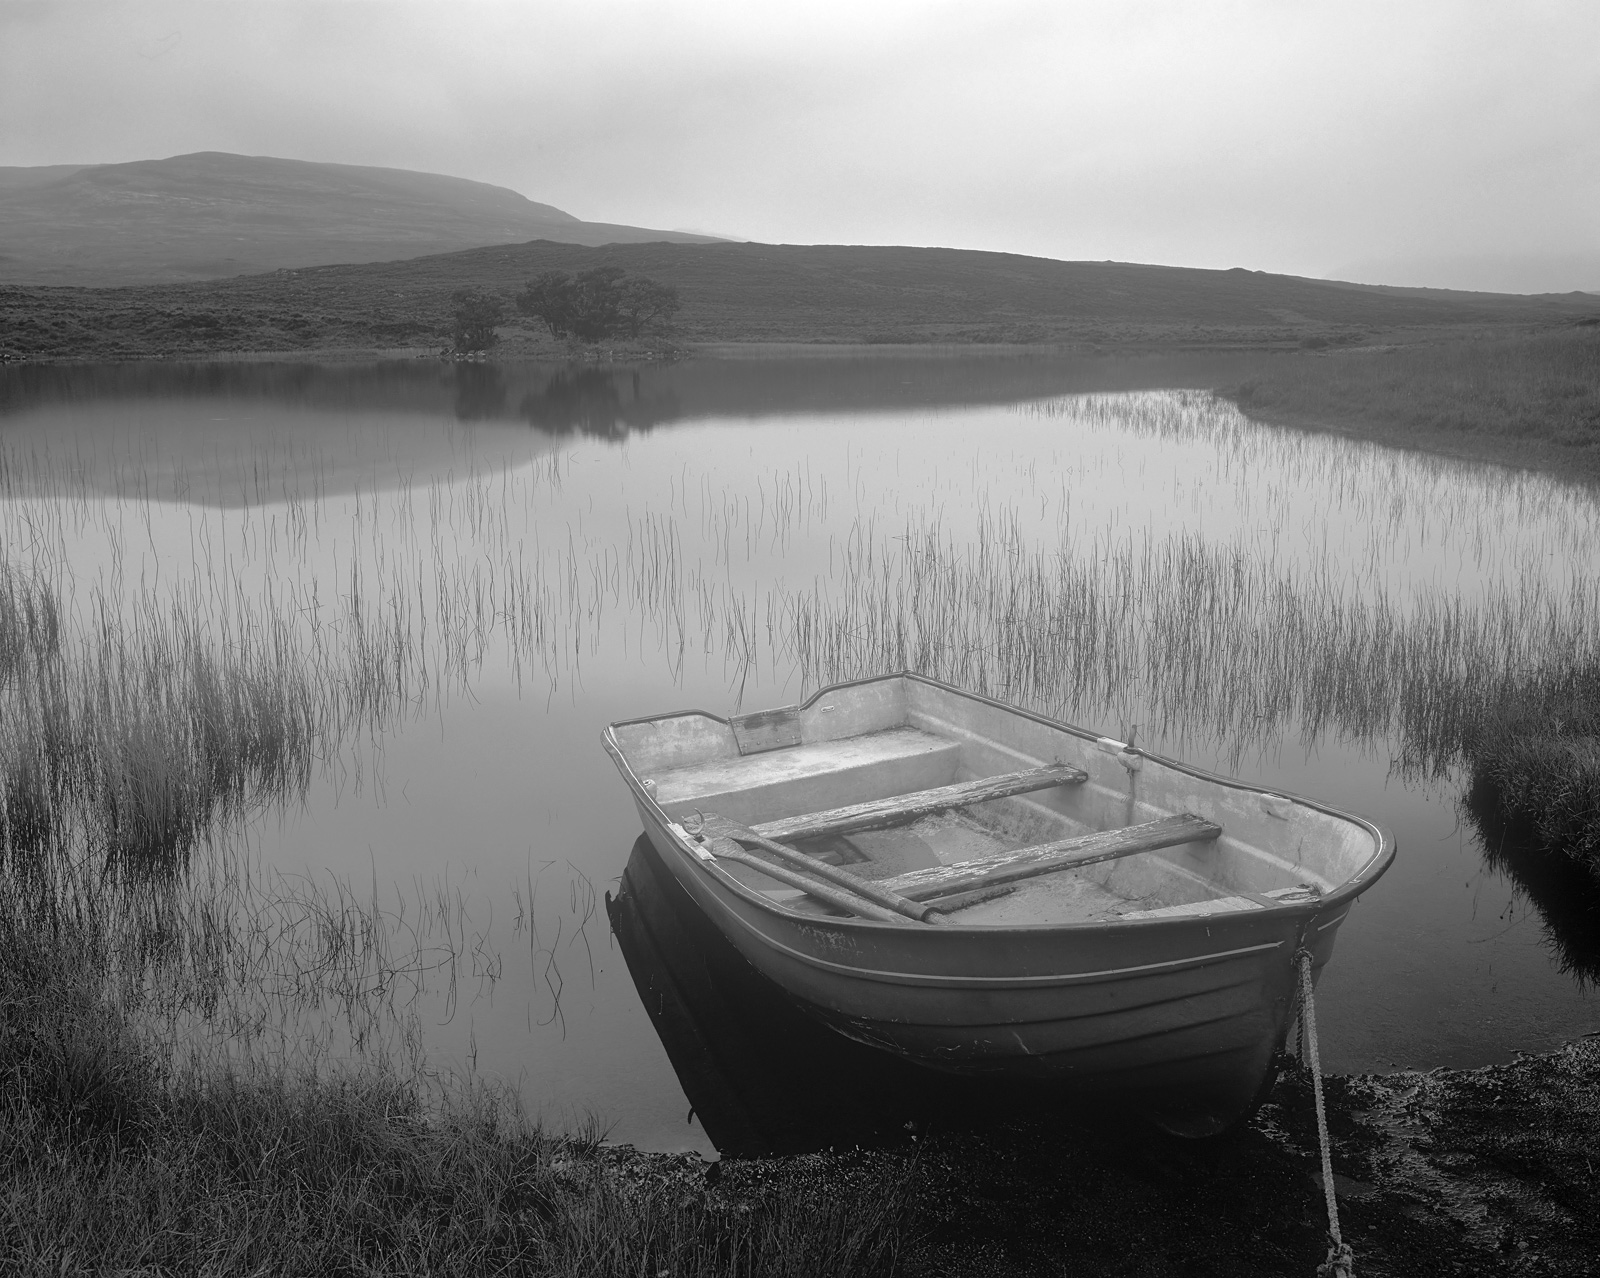 This little loch probably seems a tiny bit sad and dreary and the wee blue row boat with its peeling paint adds to the sense...